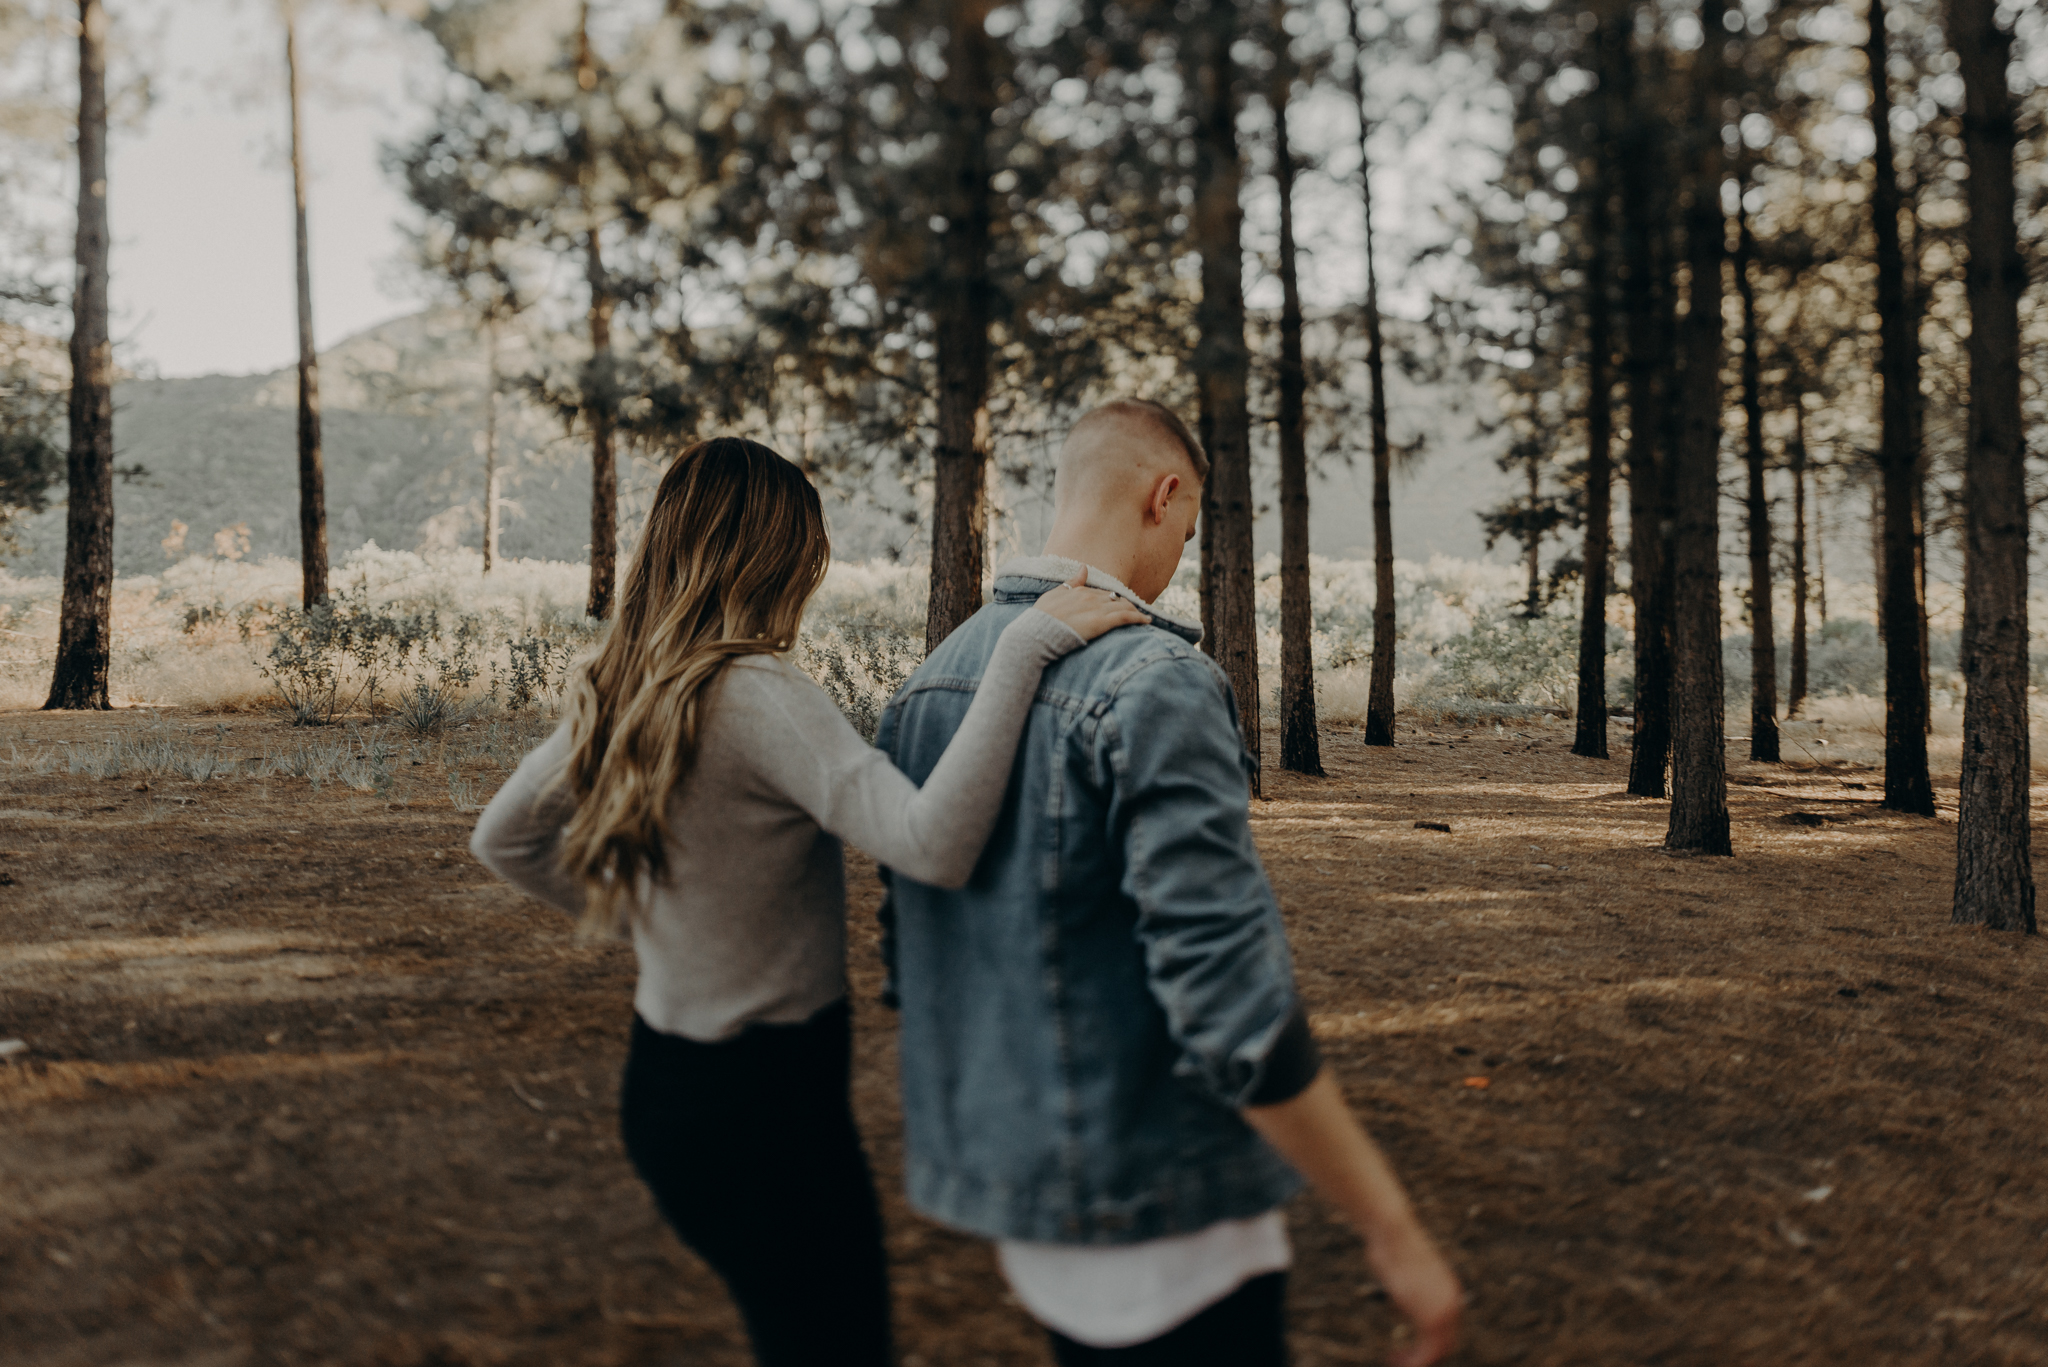 Isaiah + Taylor Photography - Los Angeles Forest Engagement, Laid-back Wedding Photographer-062.jpg